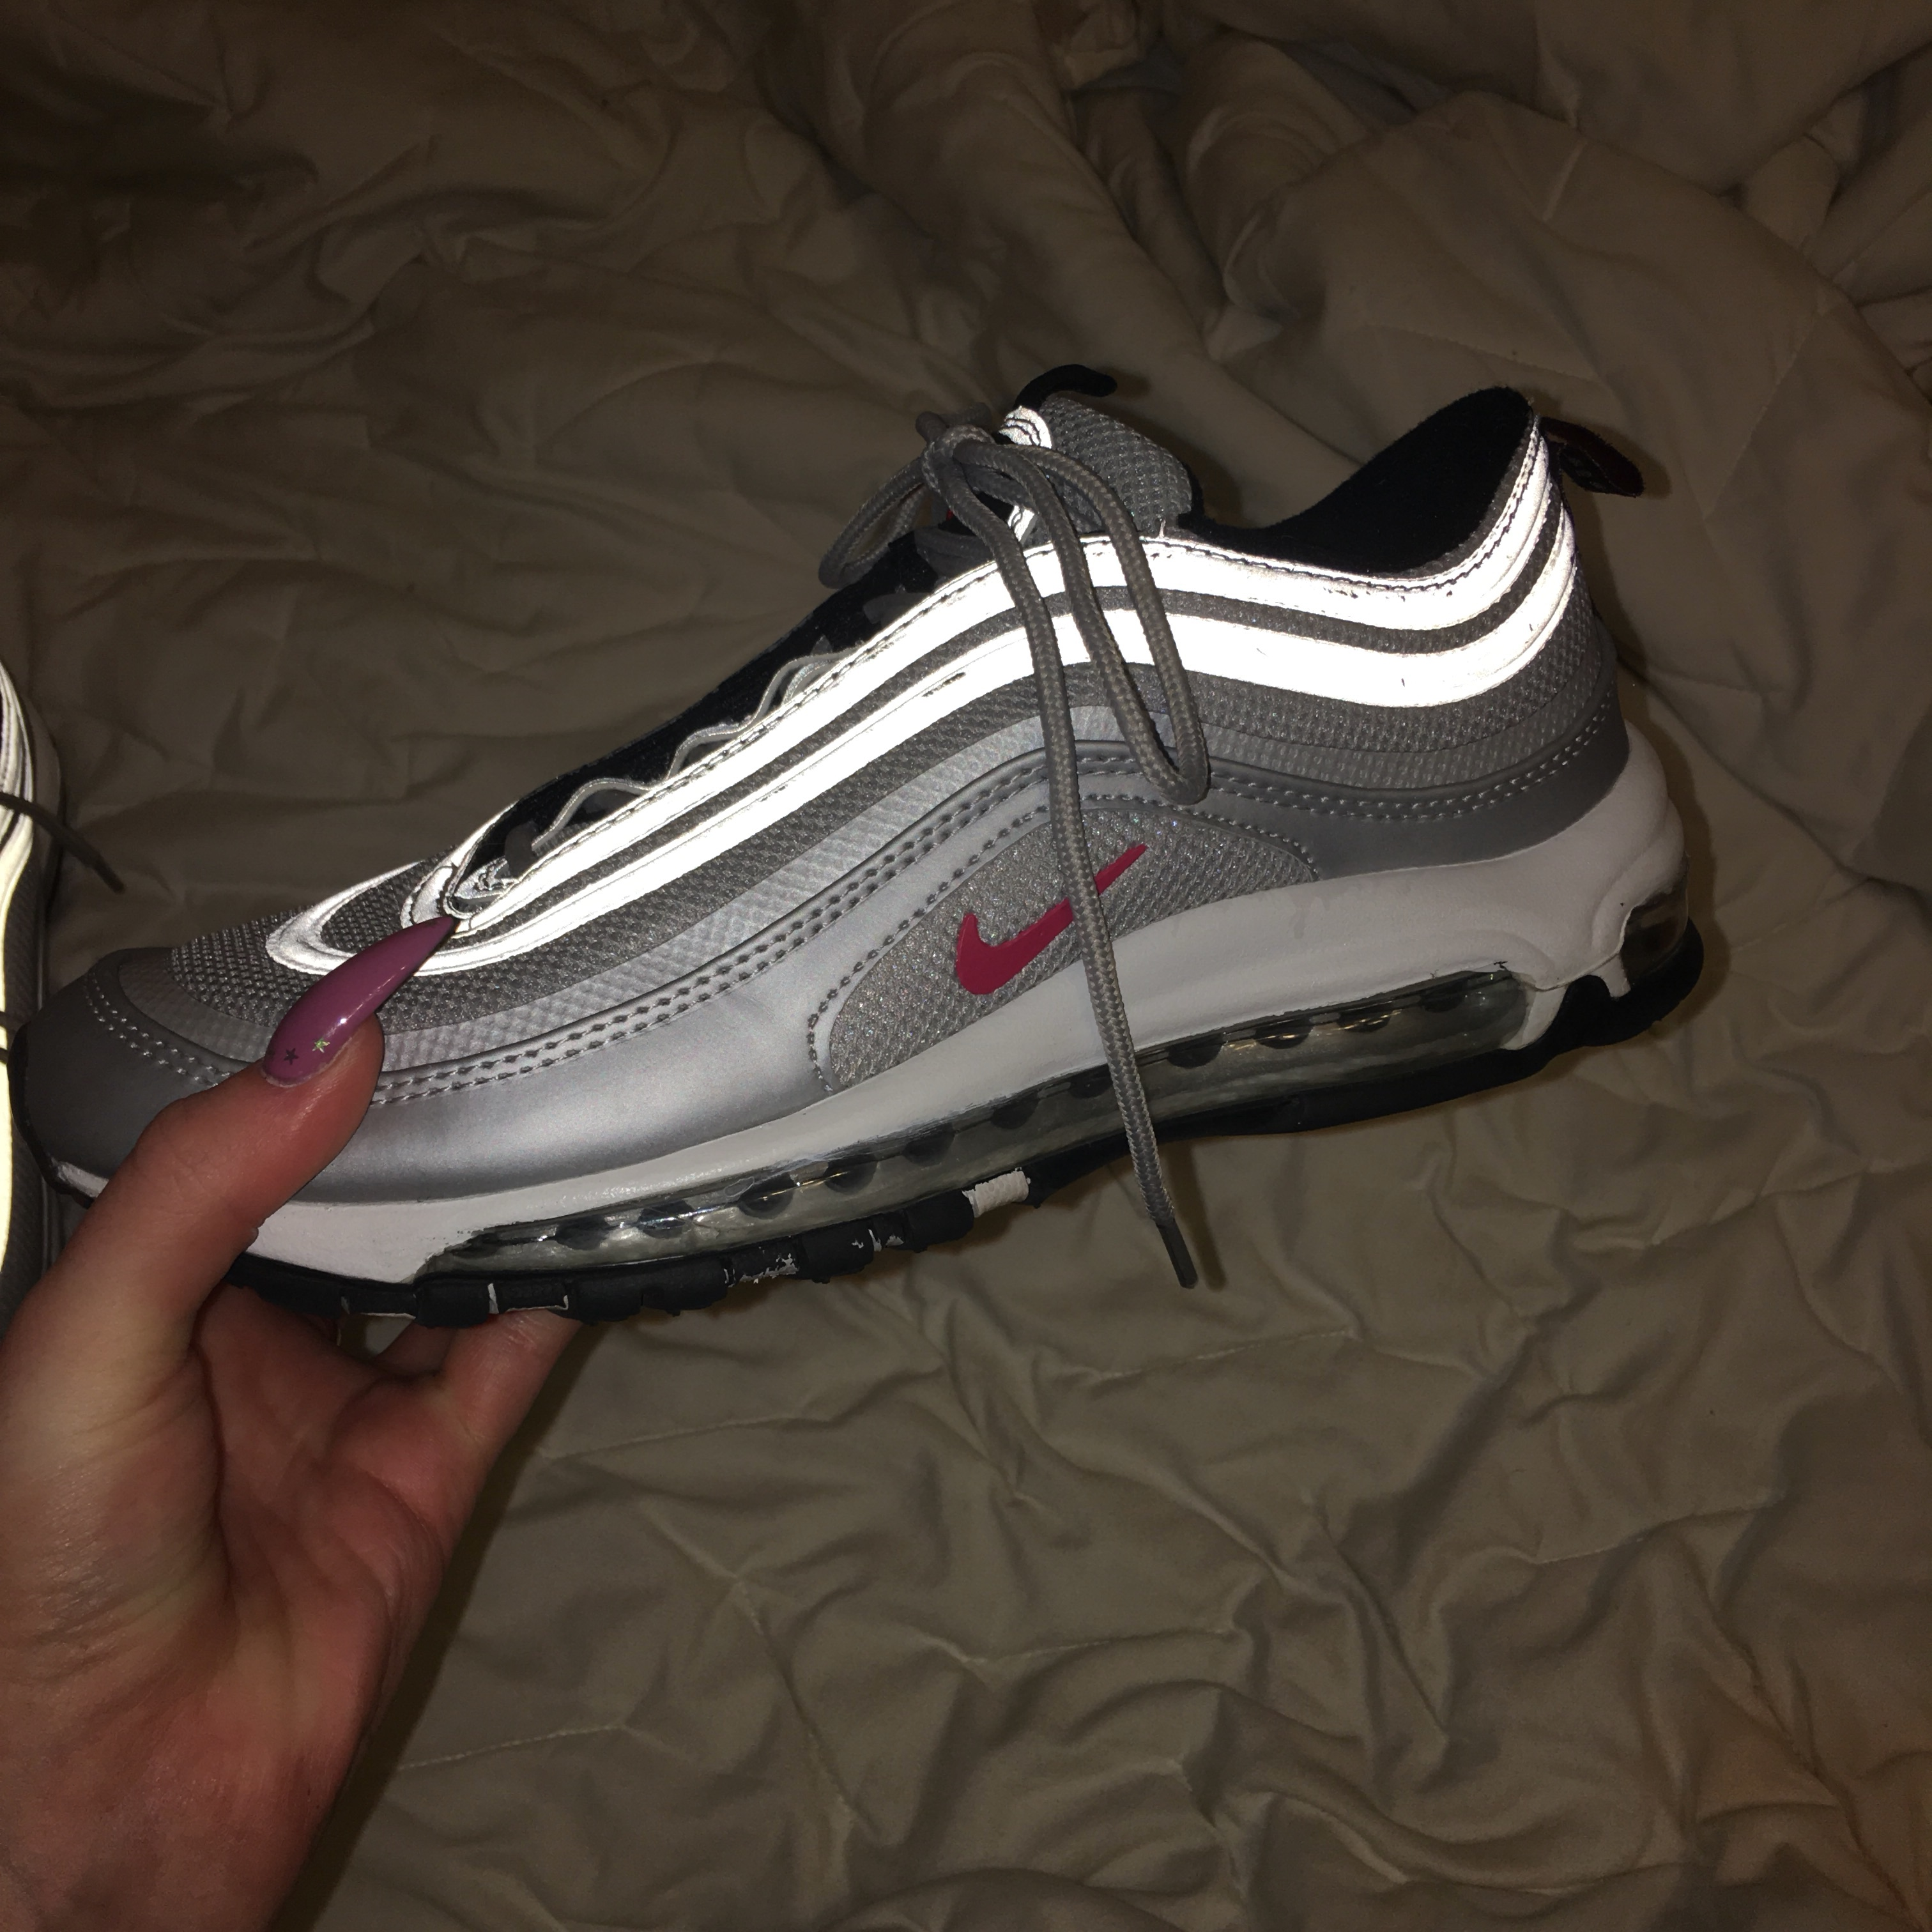 Air max 97 silver bullet women's size 9